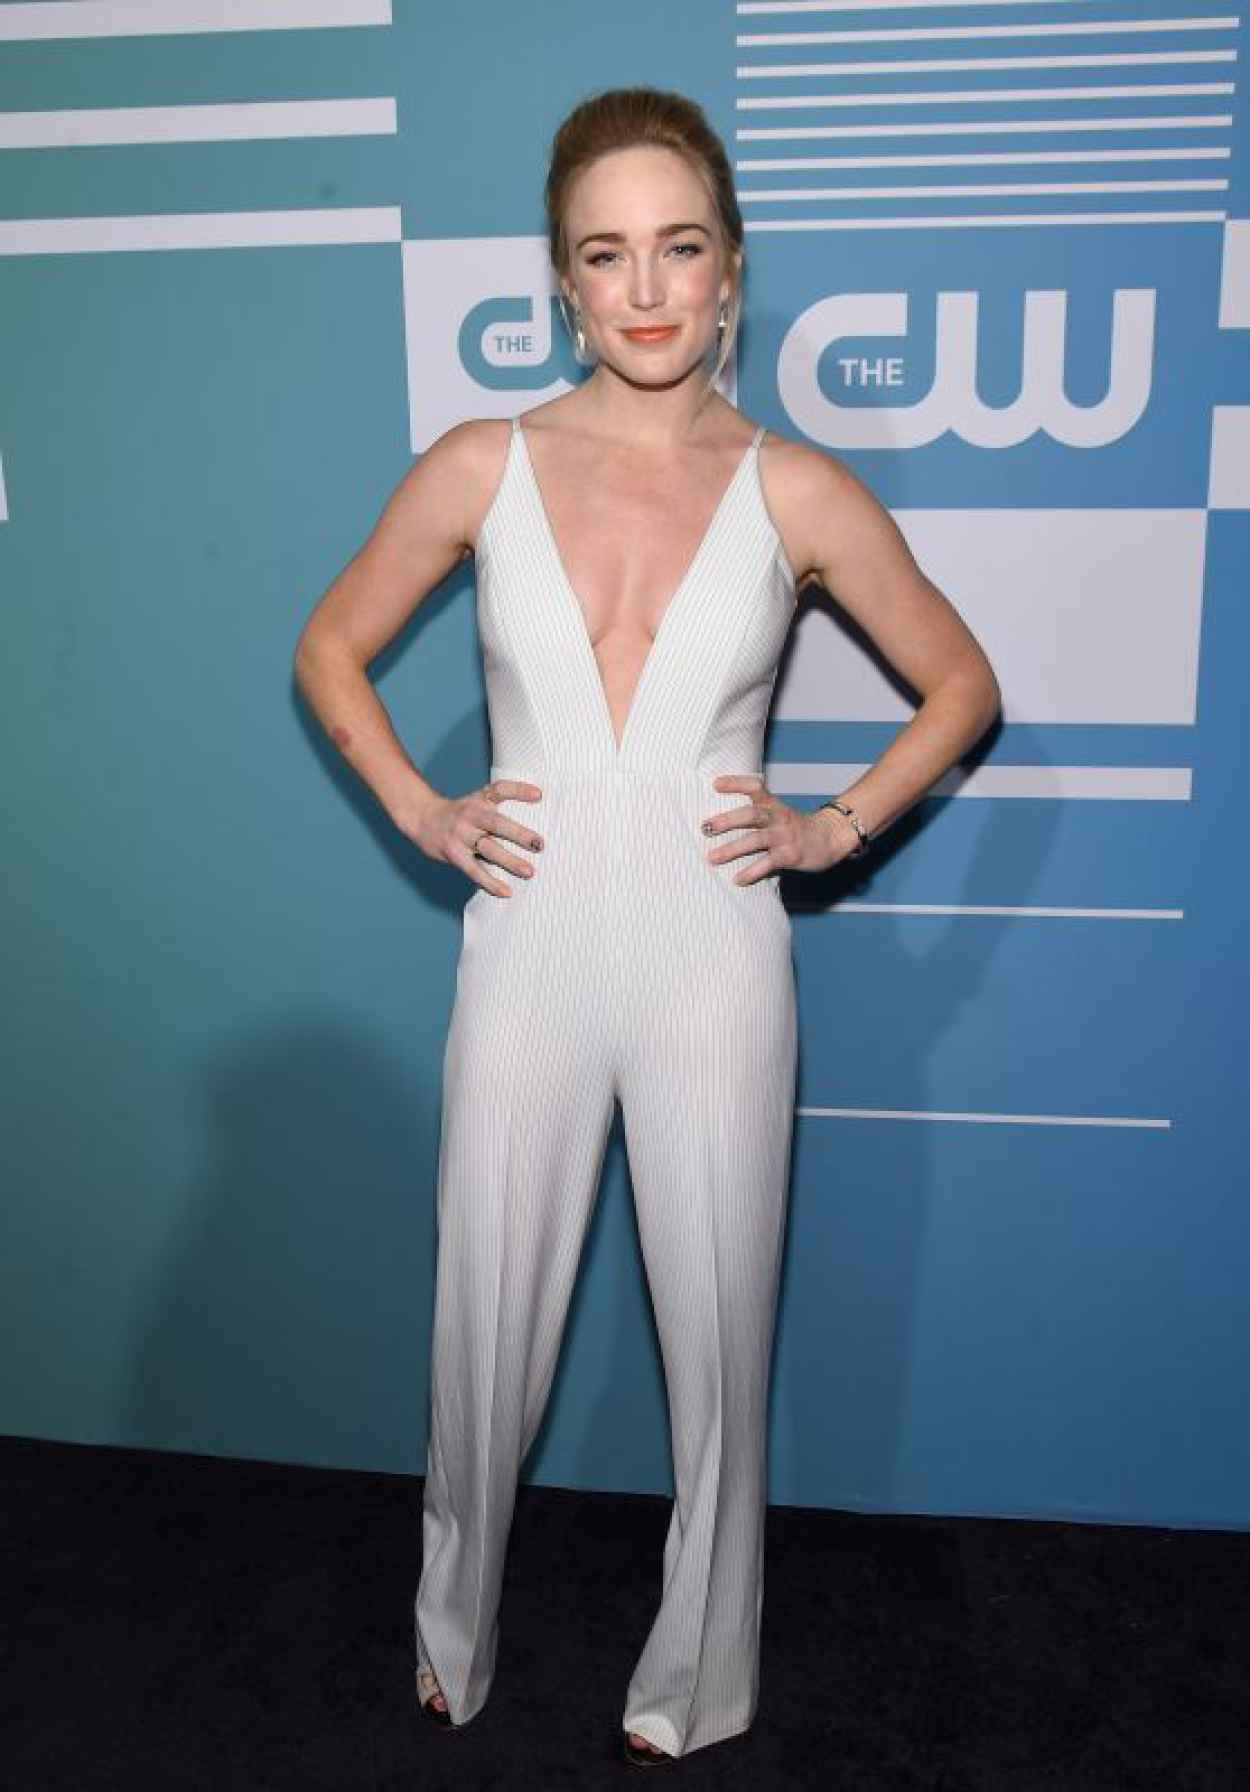 Caity Lotz The CW Networks 2015 Upfront in New York City